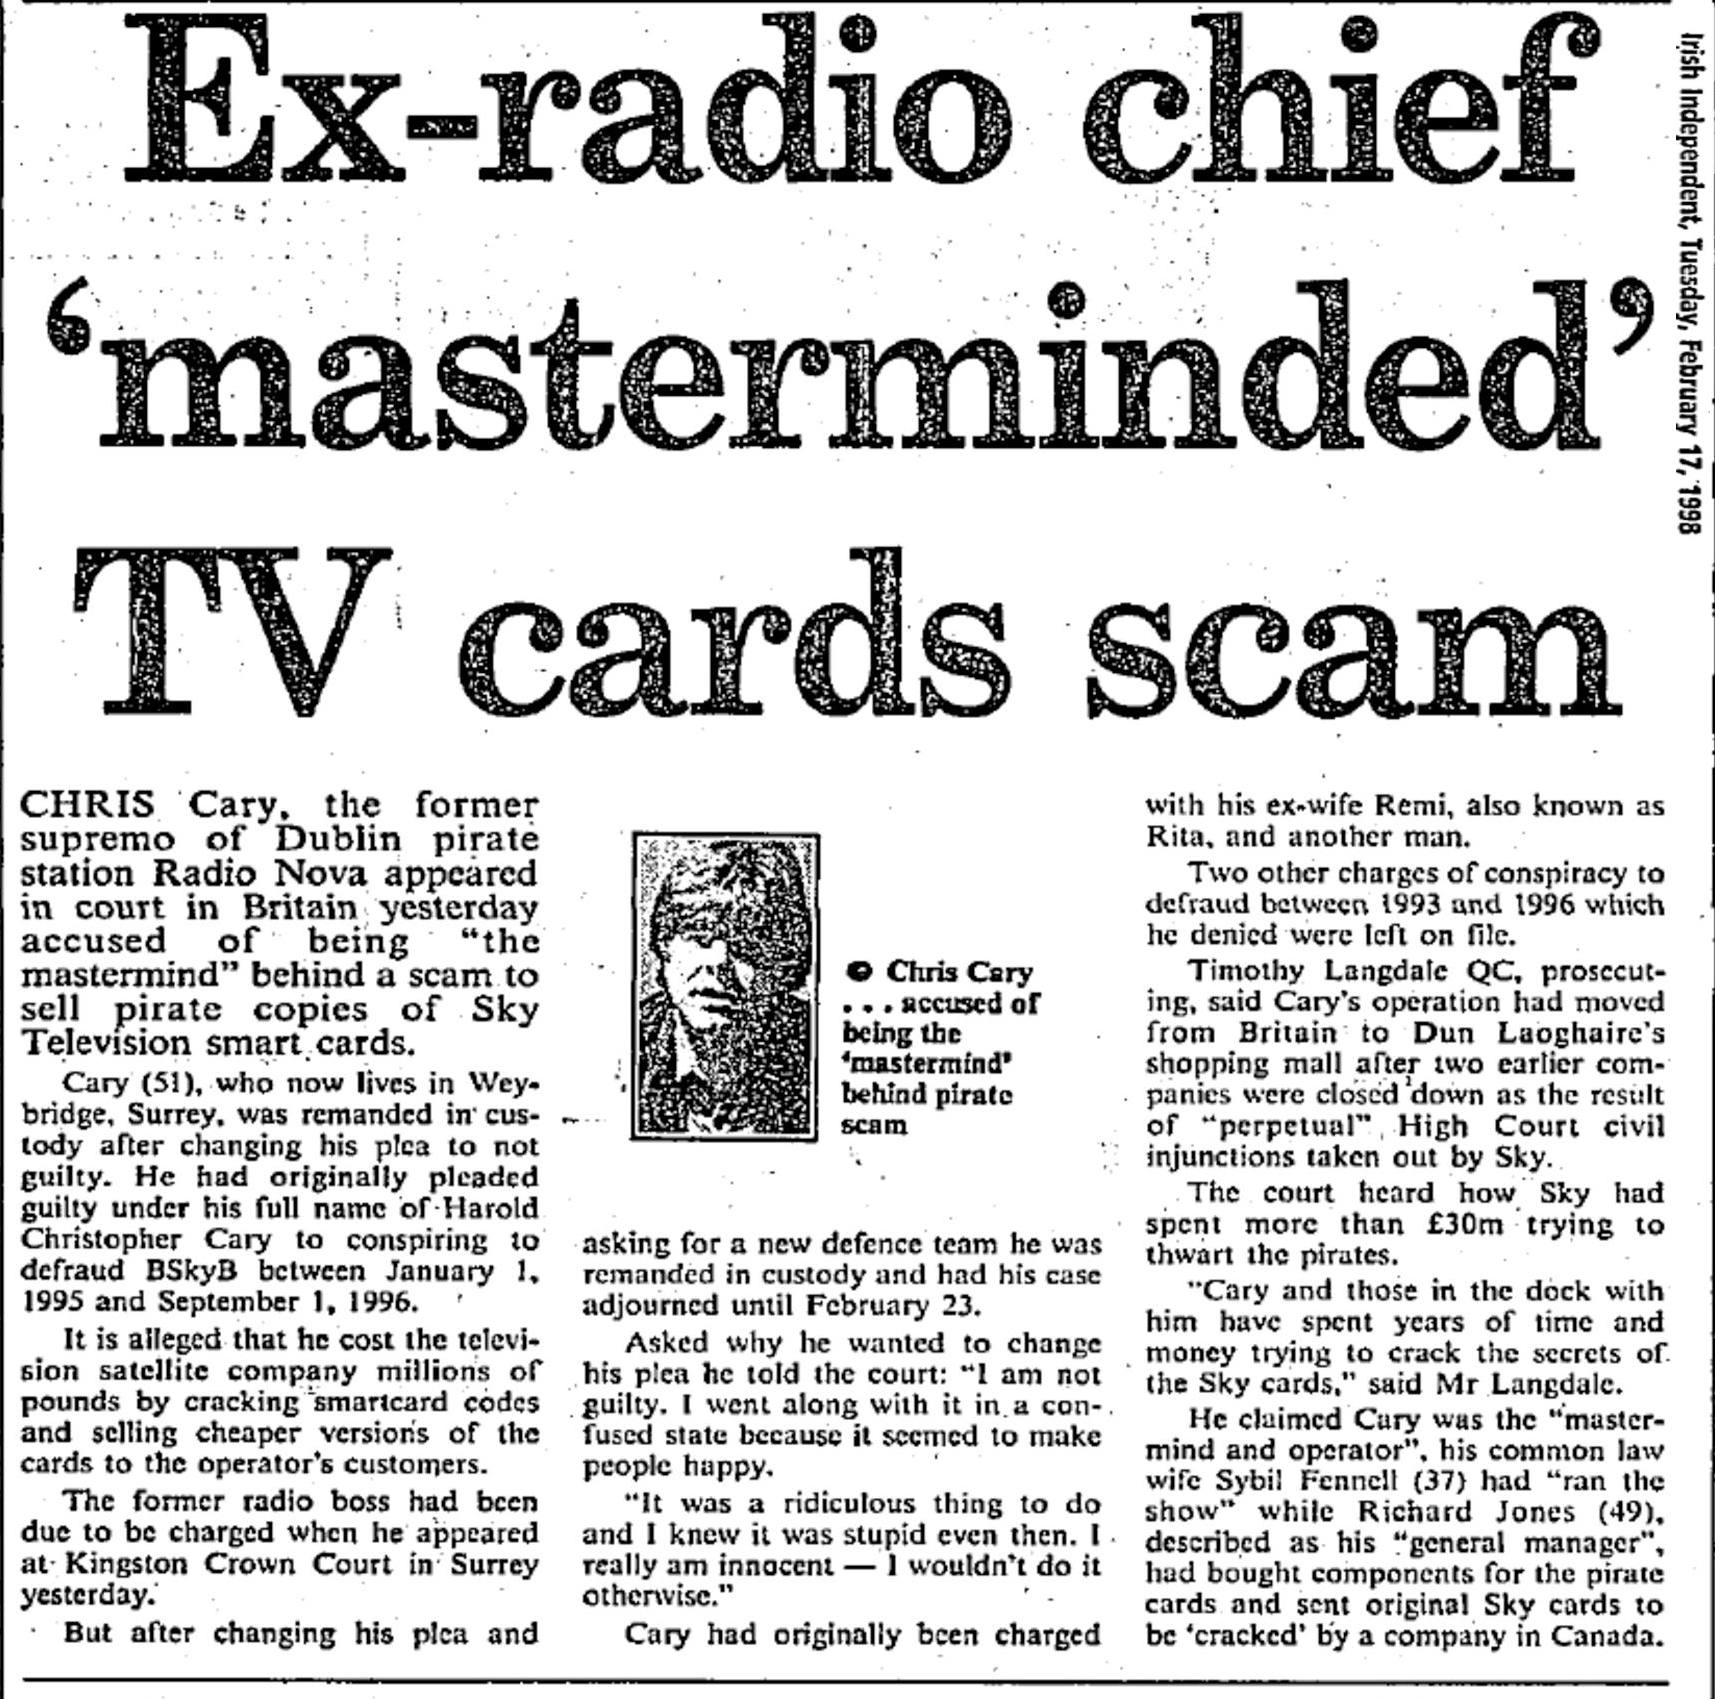 Ex-radio chief 'masterminded' TV cards scam was a headline from The Irish Independent dated February 17th 1998